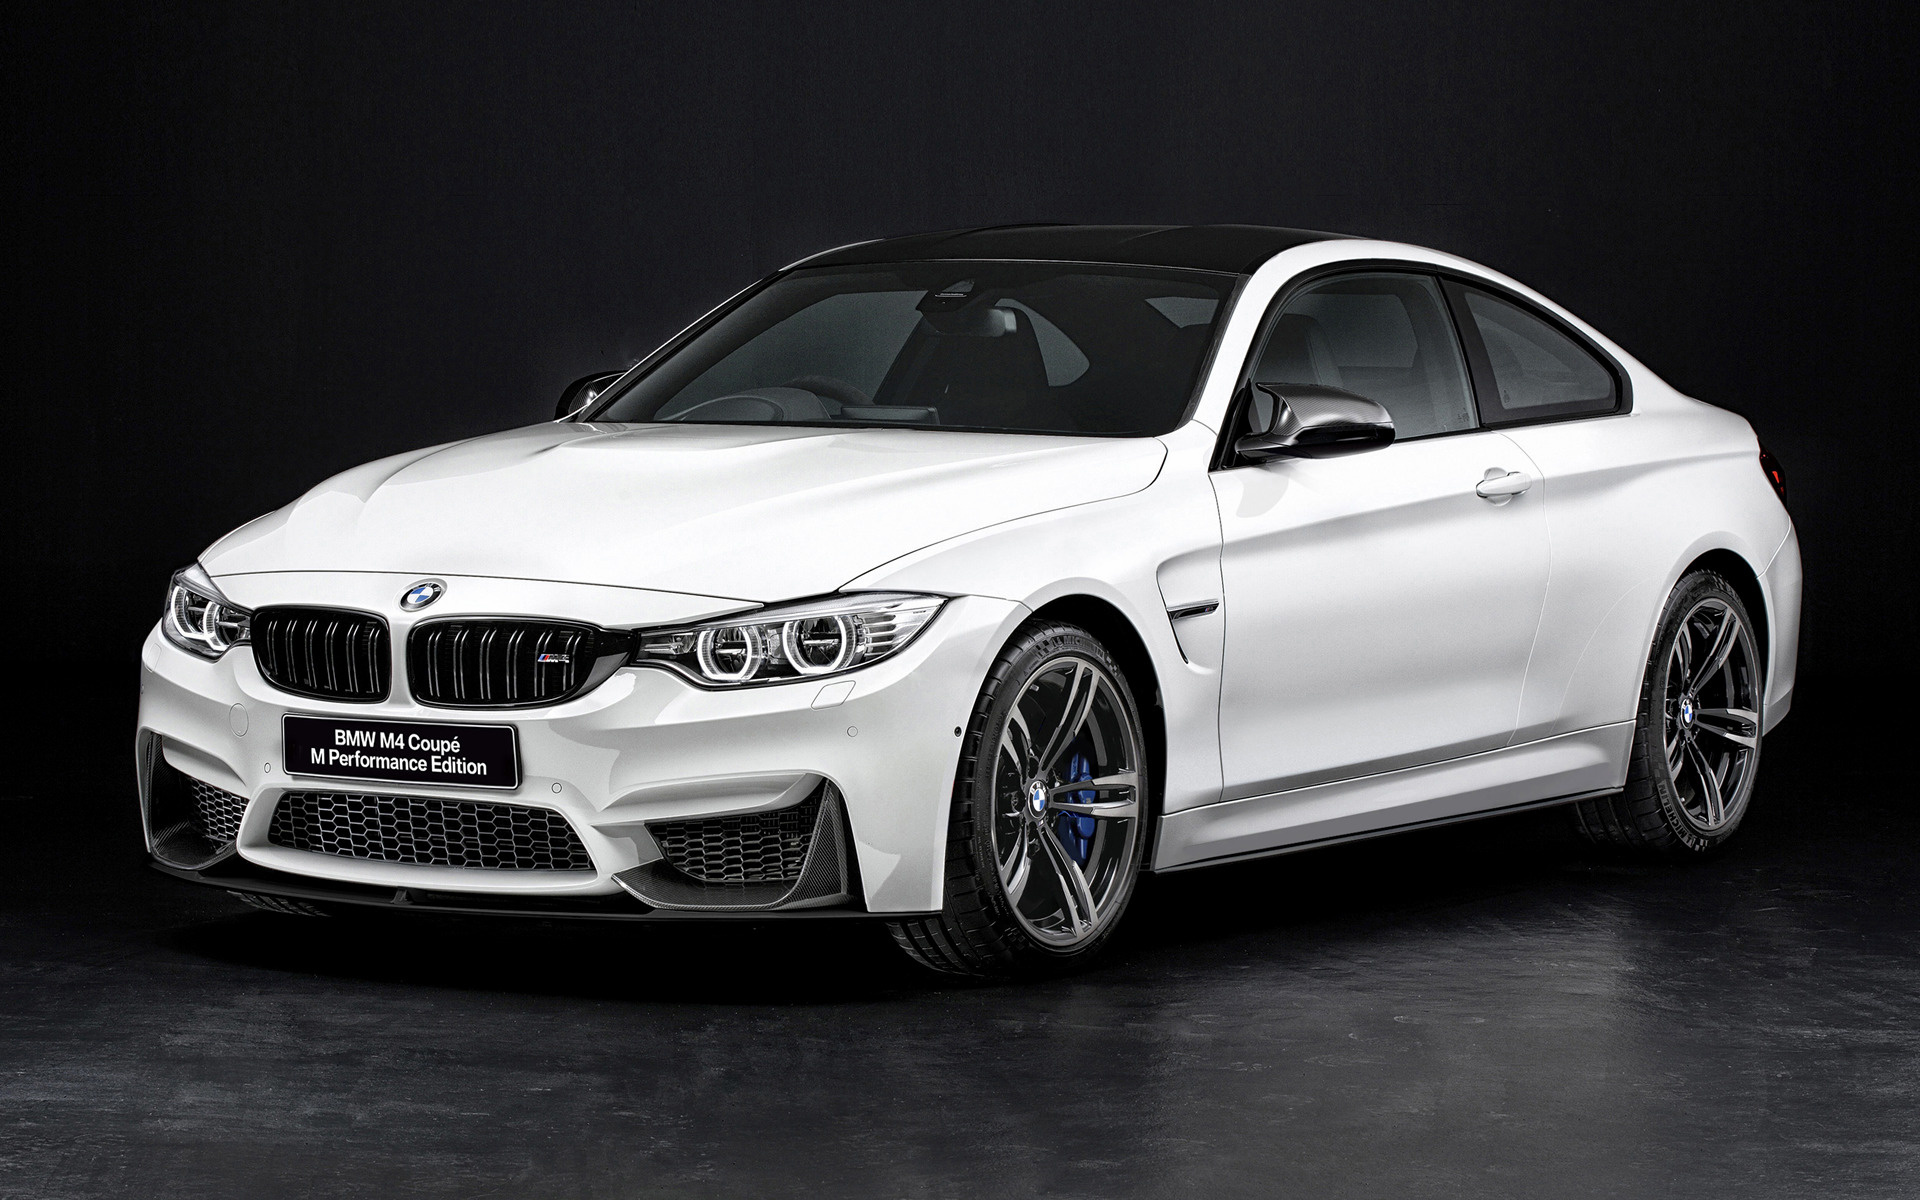 2015 Bmw M4 Coupe M Performance Edition Jp Wallpapers